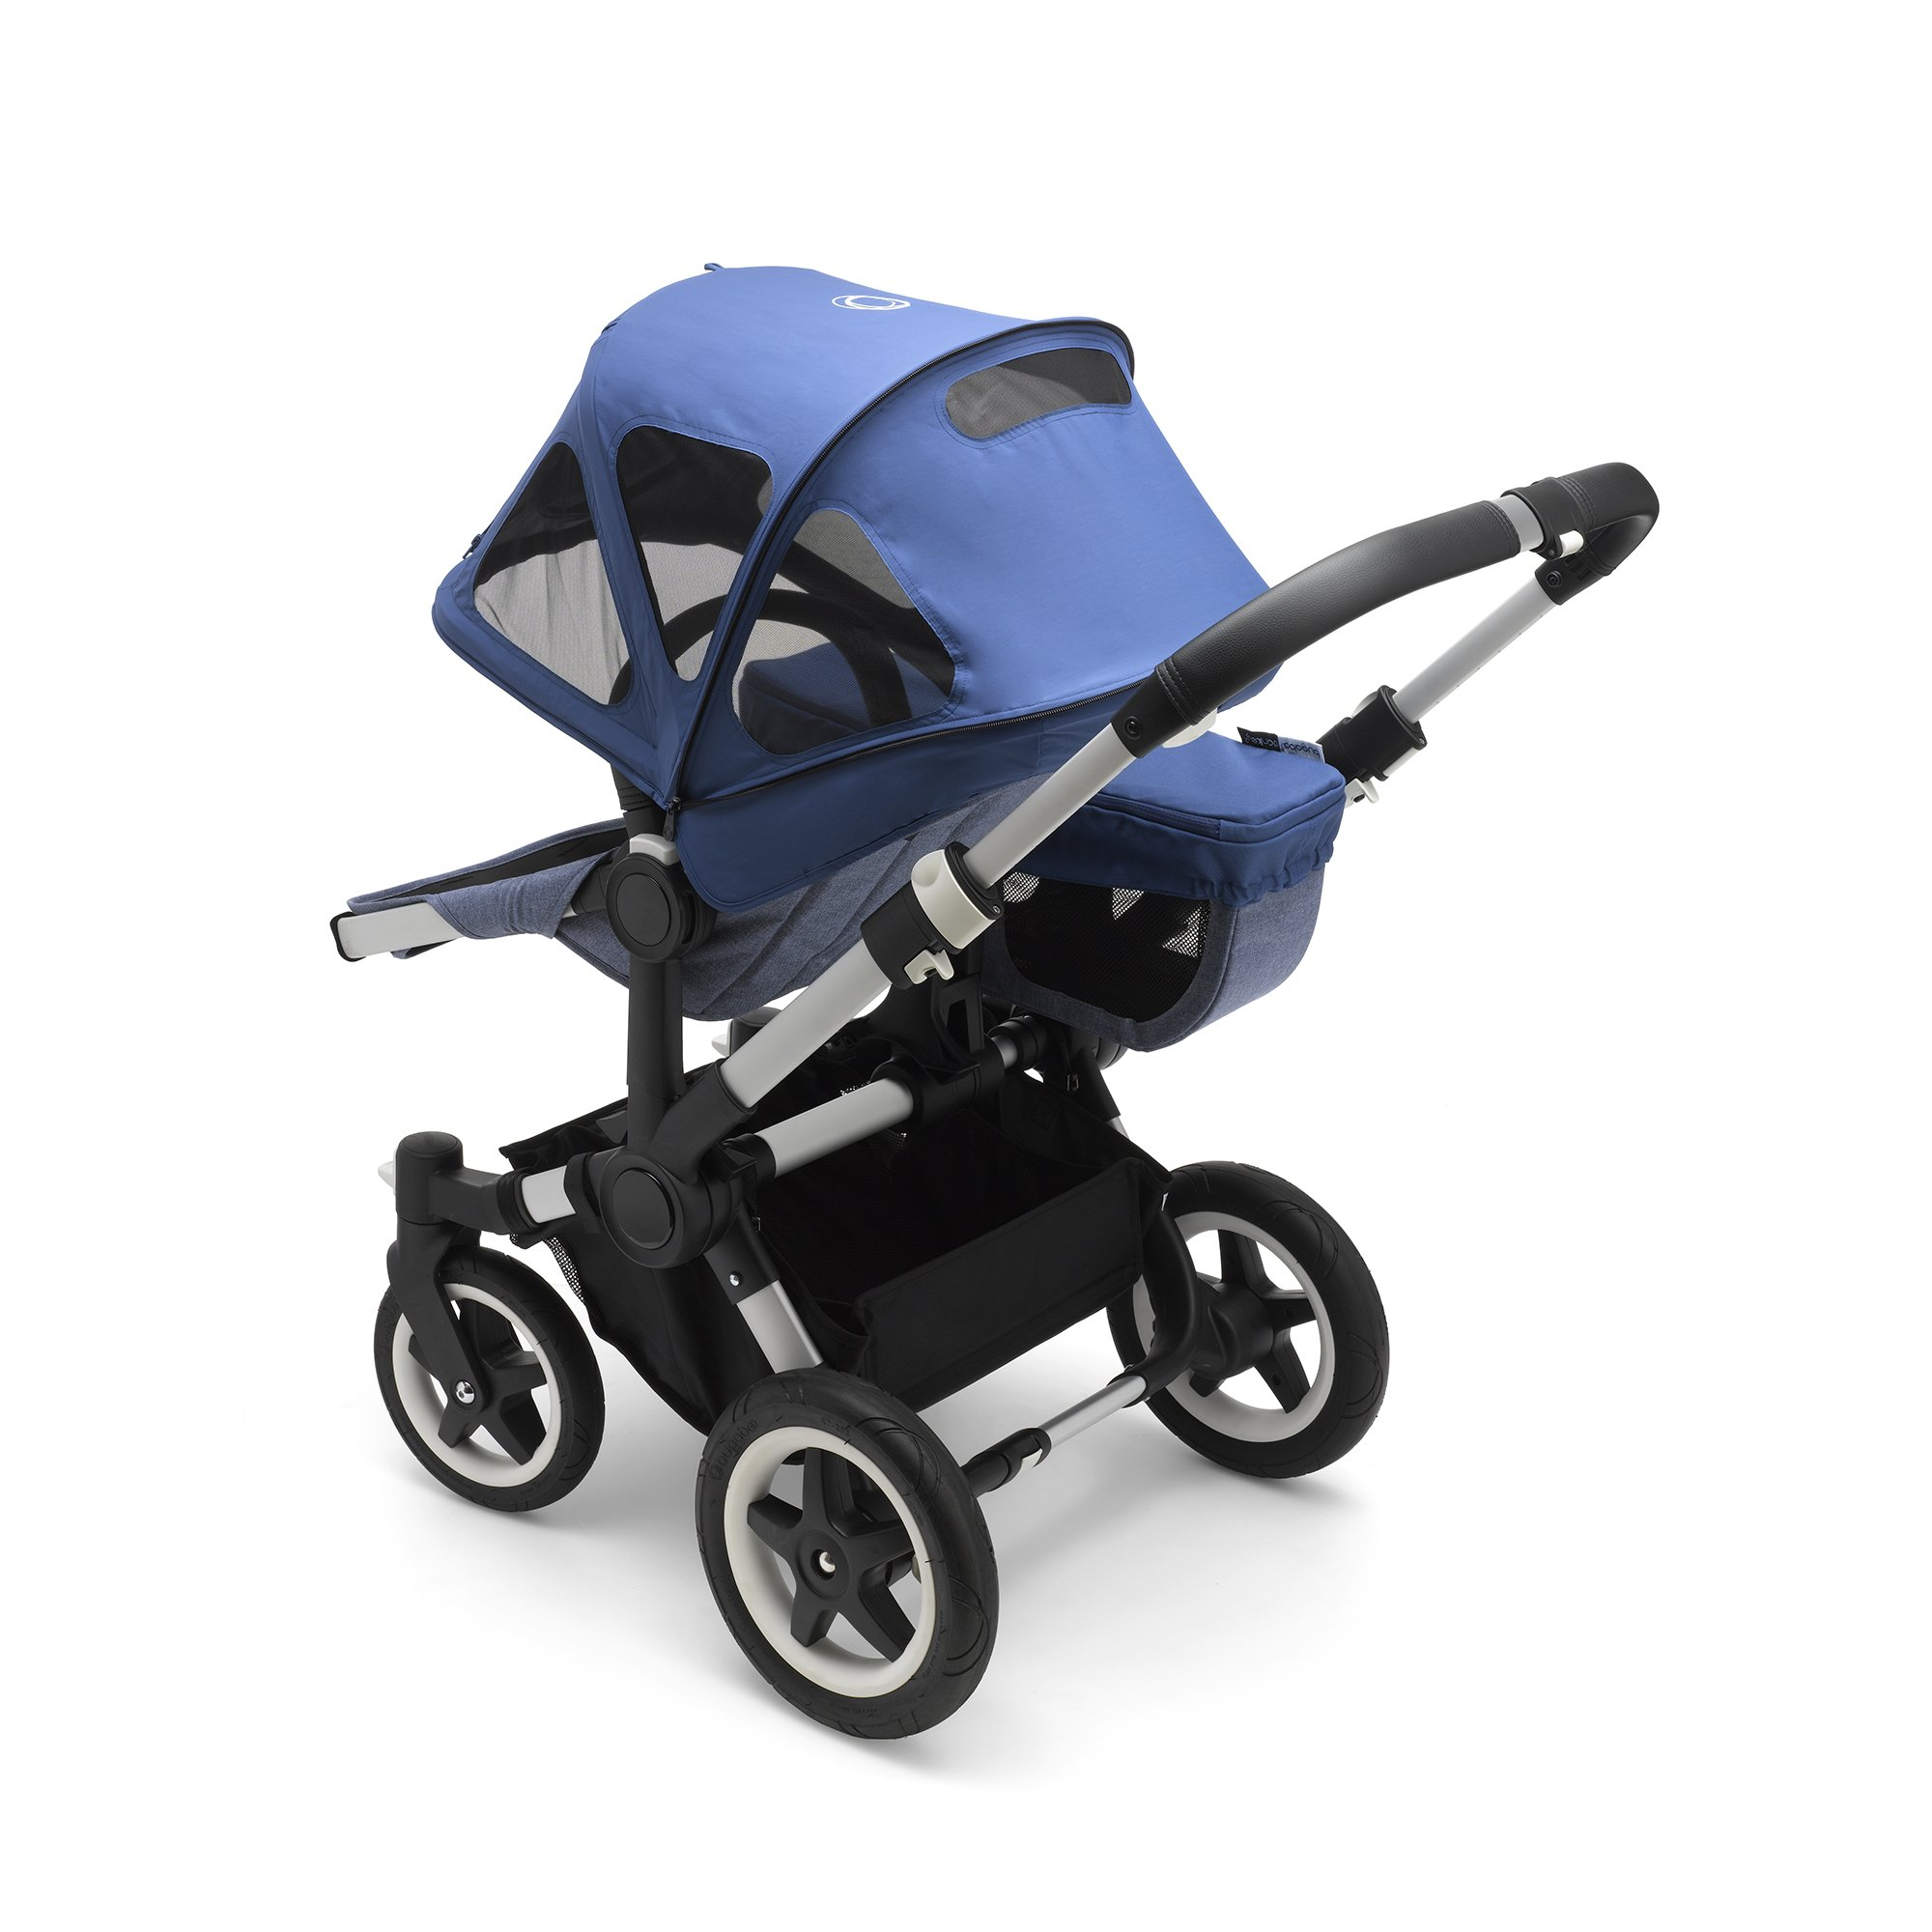 Bugaboo Donkey2 Breezy Sun Canopy, Sky Blue - Extendable Sun Canopy with UPF Sun Protection and Mesh Ventilation Panels by Bugaboo (Image #2)